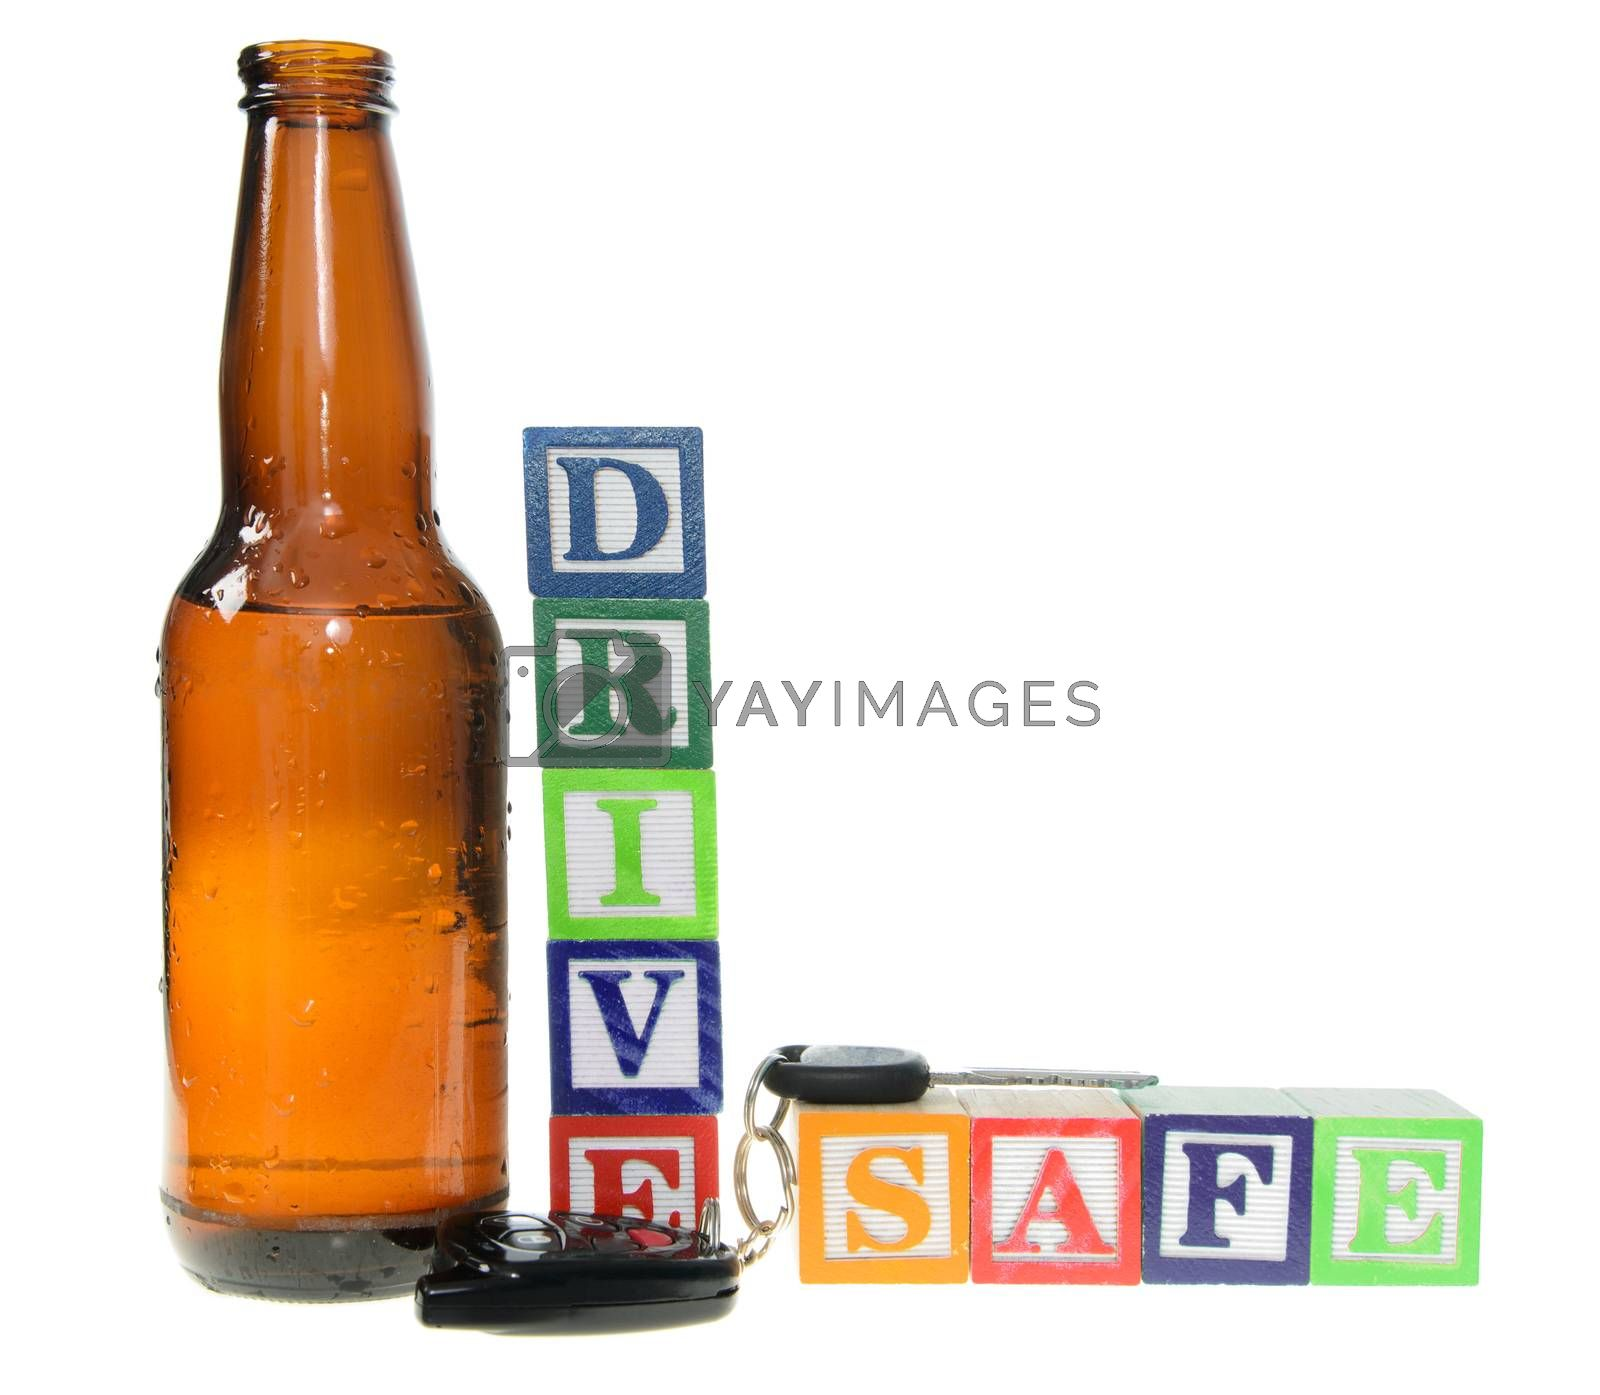 Letter blocks spelling drive safe with a beer bottle and keys. Isolated on a white background